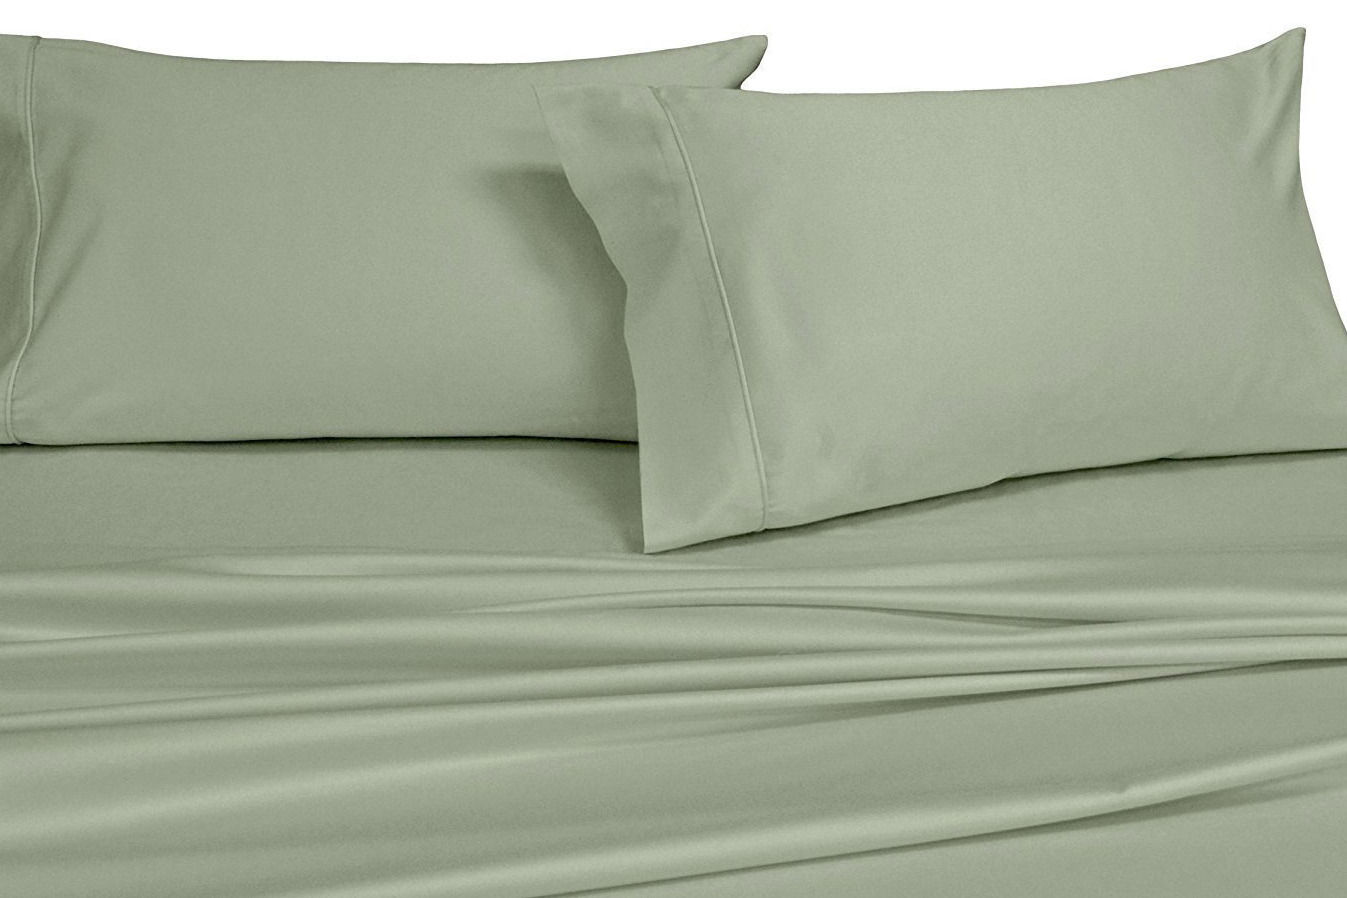 Design Ideas bed sheets best 1000-thread-count sheets ydajwwb